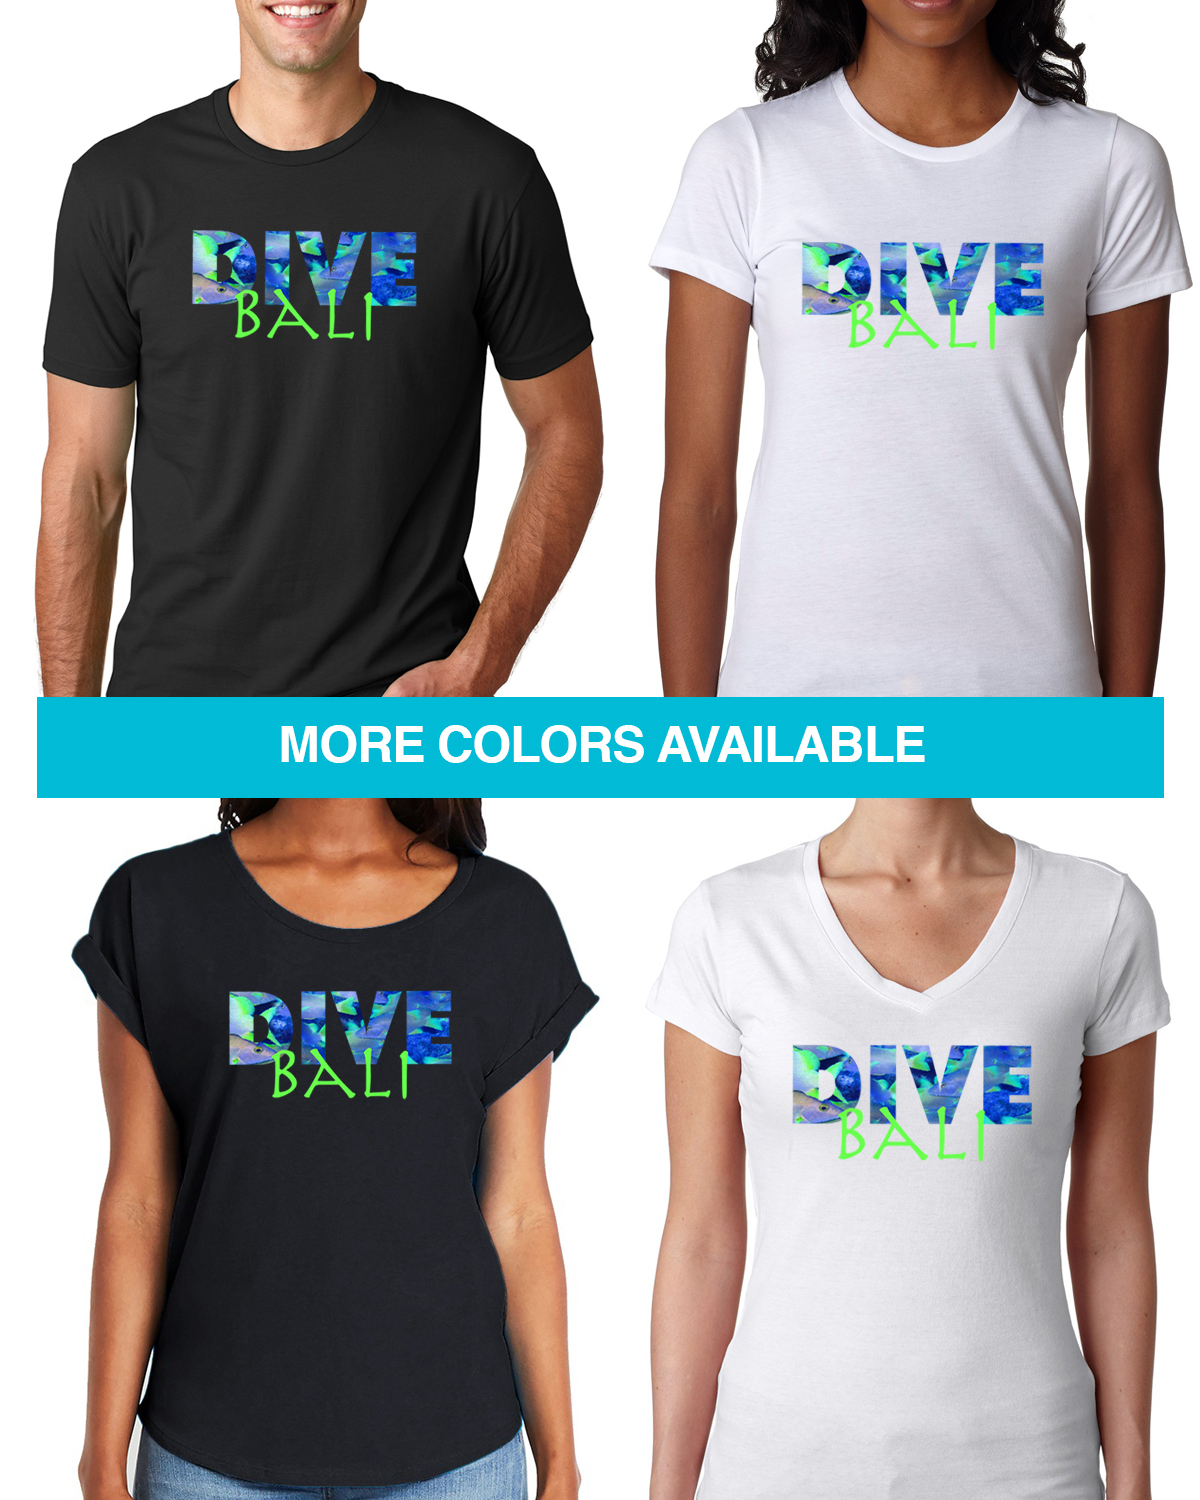 Short sleeve Dive Bali t-shirt for men and women